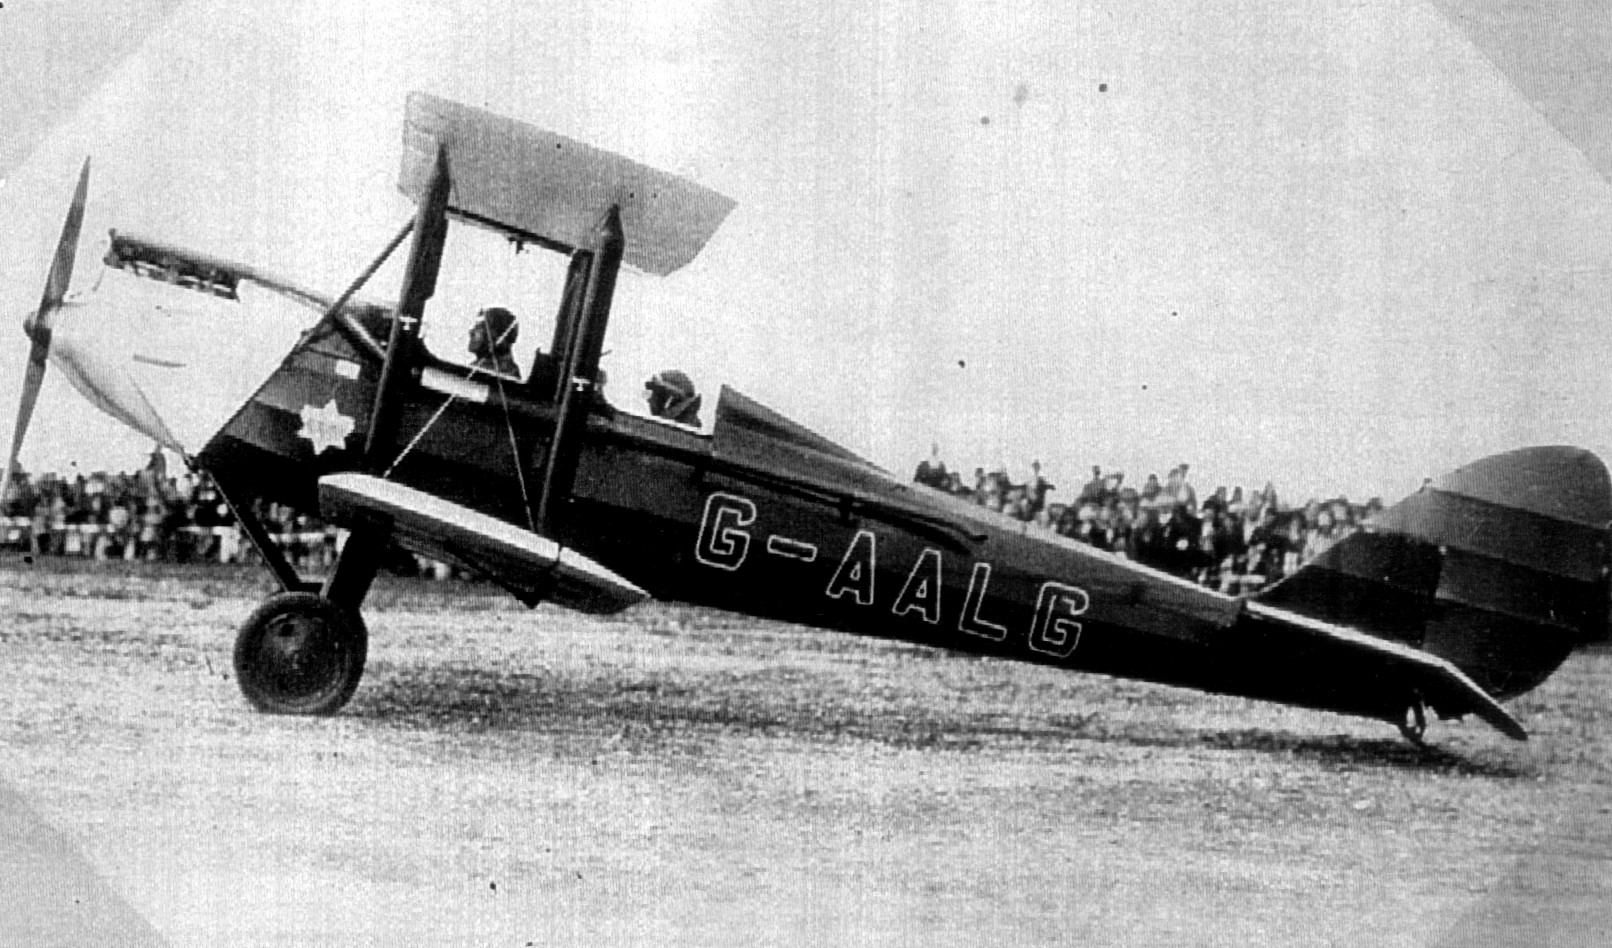 Gipsy Moth aircraft. Image from Lute Alumni.